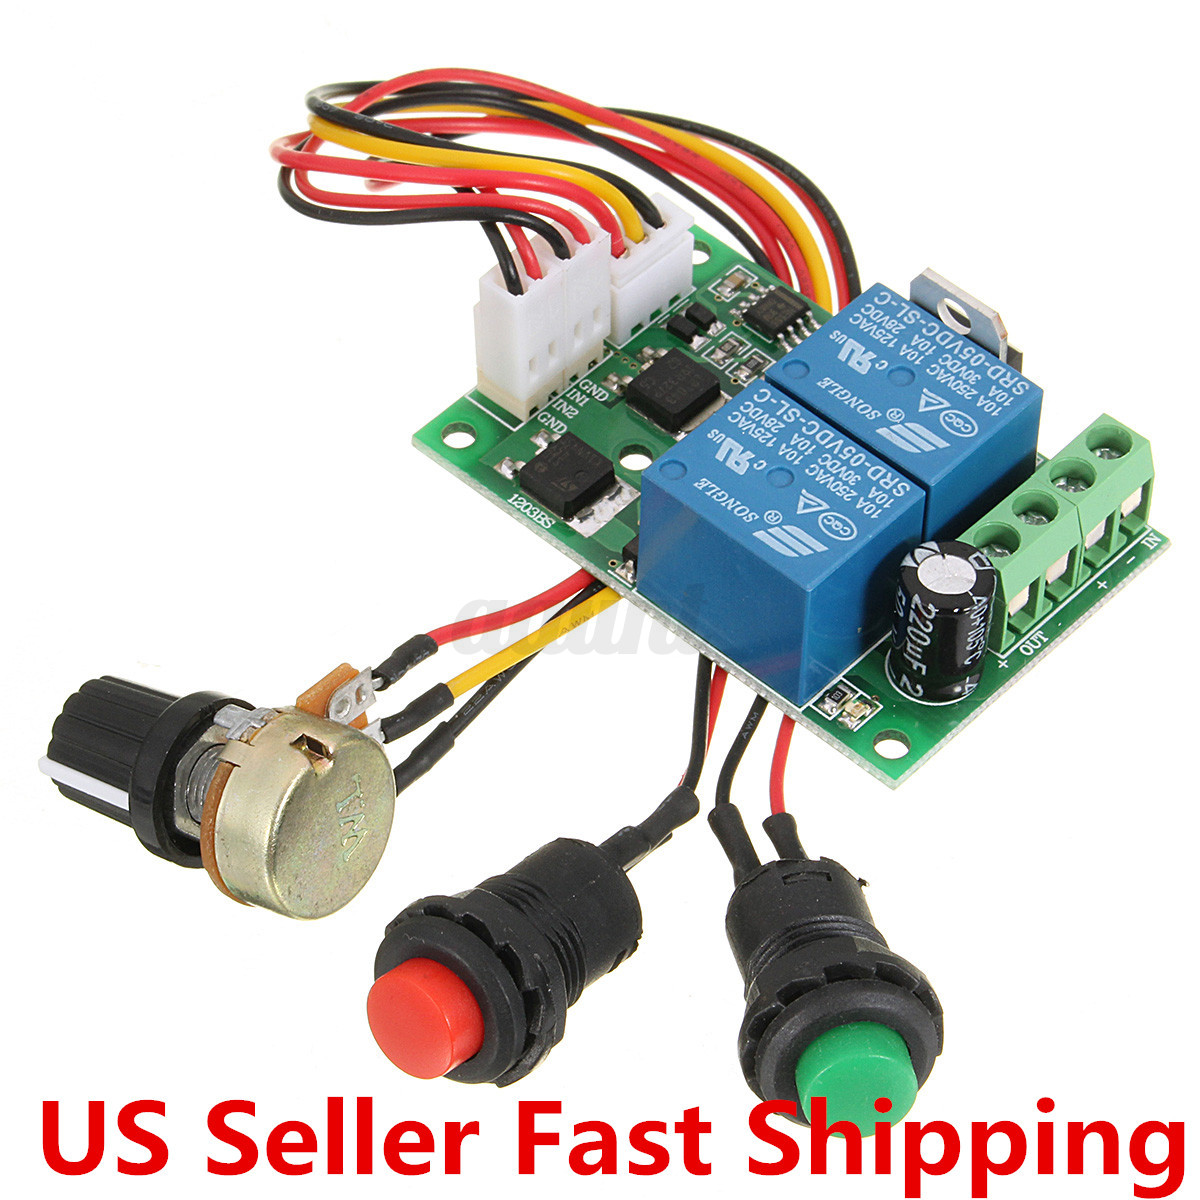 New Universal DC 6-24V 3A PWM RC Motor Speed Regulator Controller Switch US